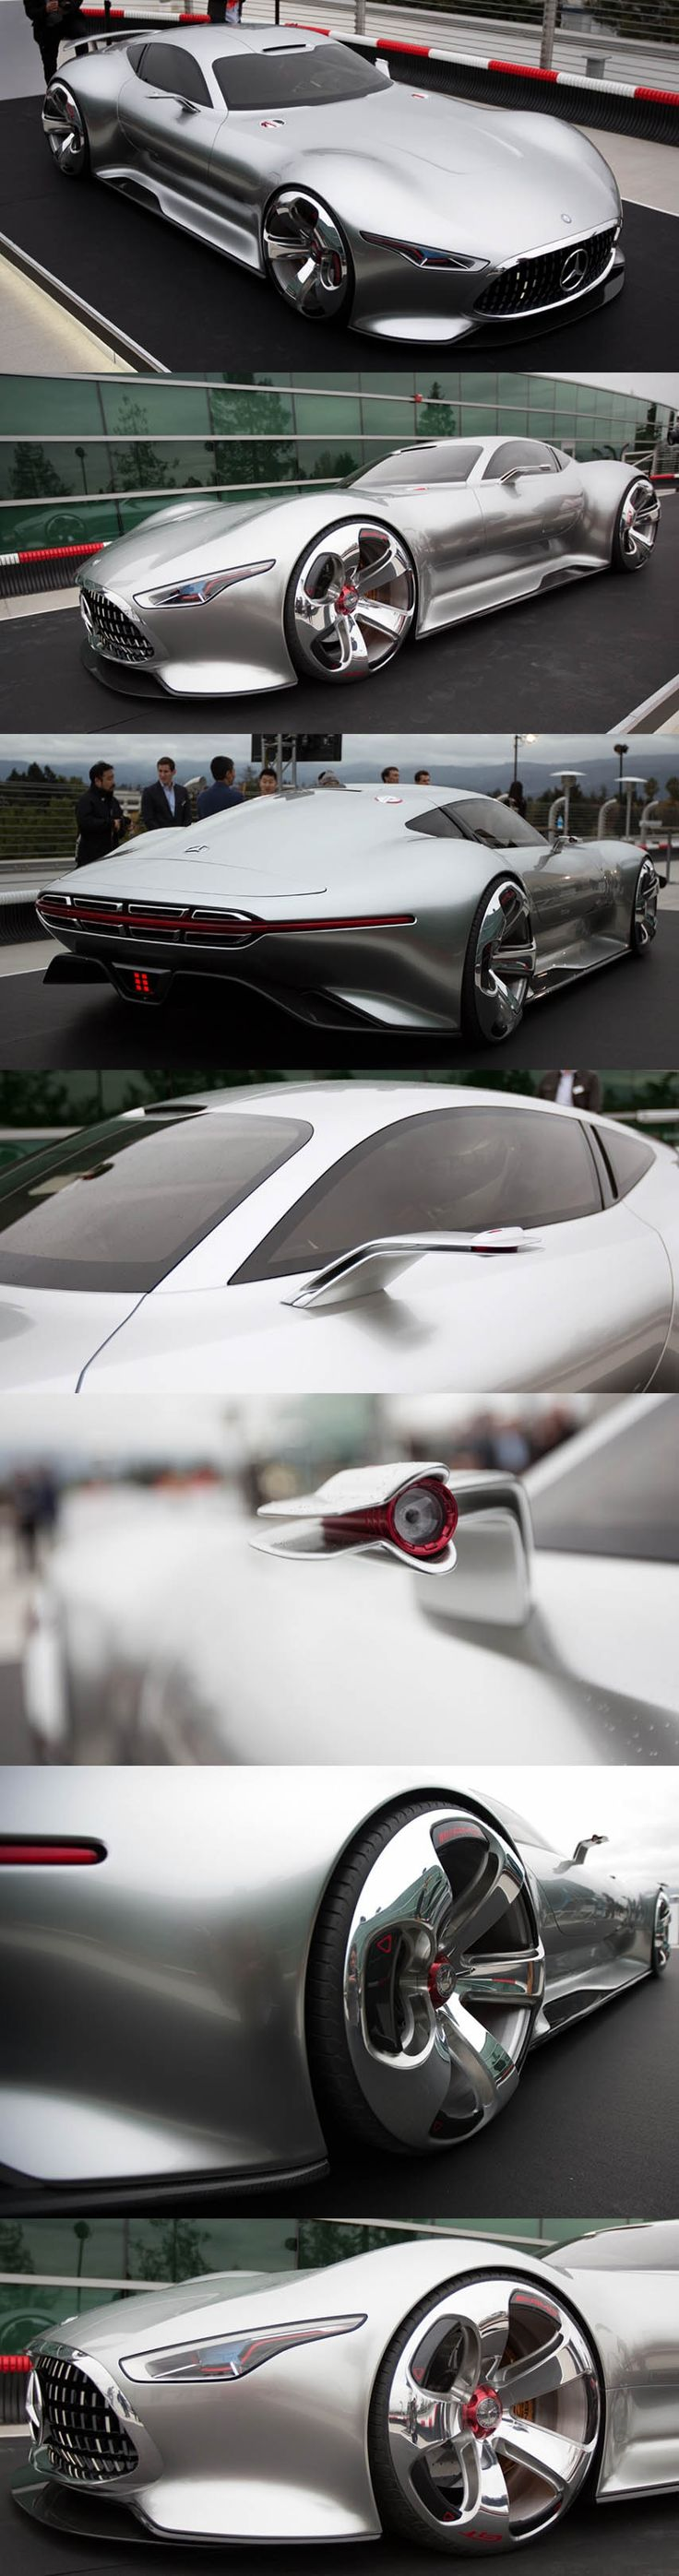 Mercedes-AMG Vision Gran Turismo concept Join Jet For Free before 2/6/15 https://jet.com/#/ji/cmbt4